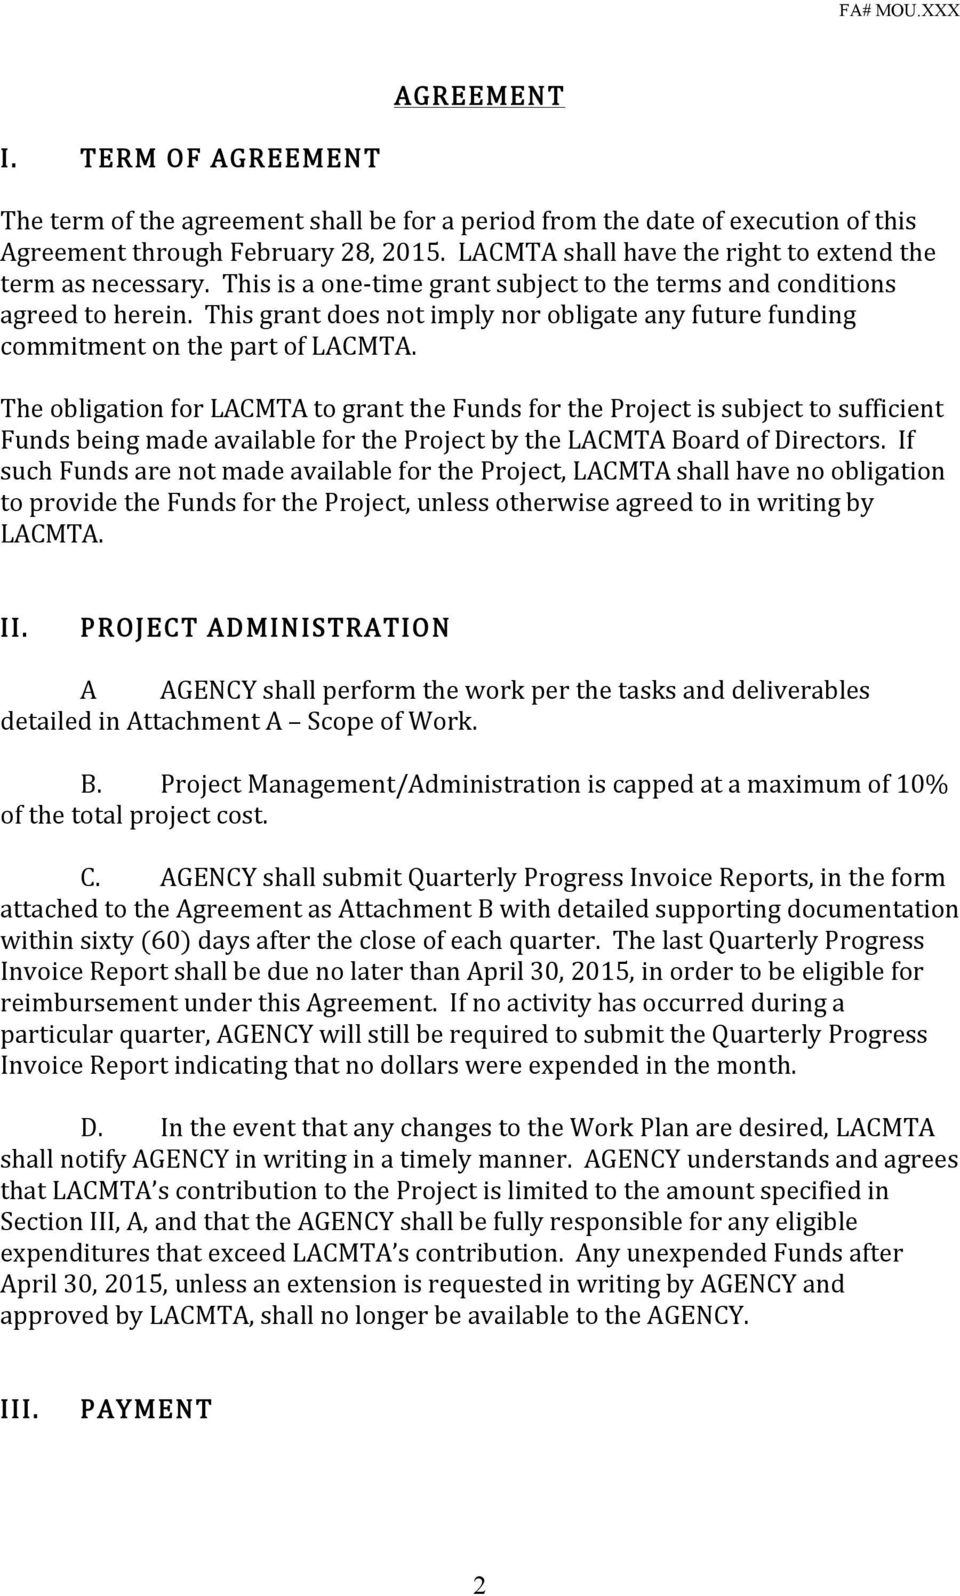 This grant does not imply nor obligate any future funding commitment on the part of LACMTA.